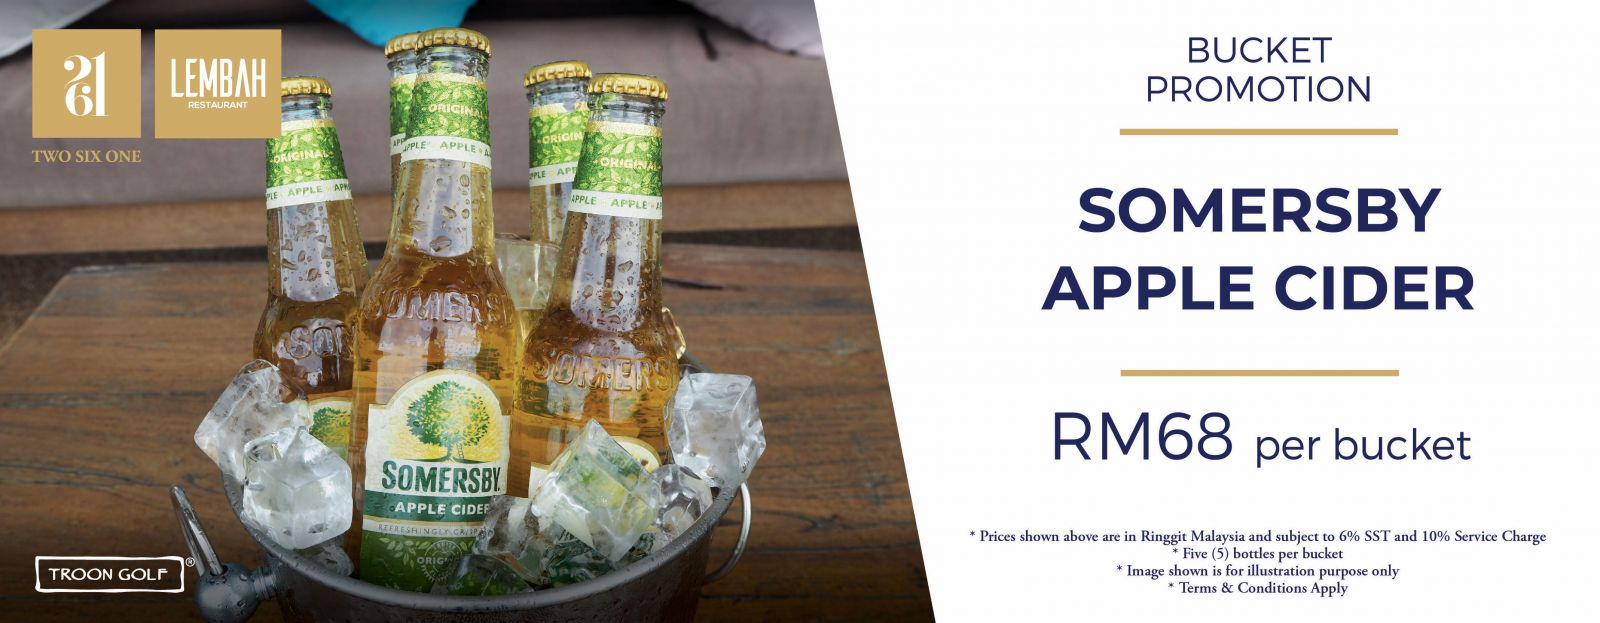 bucket promotion somersby